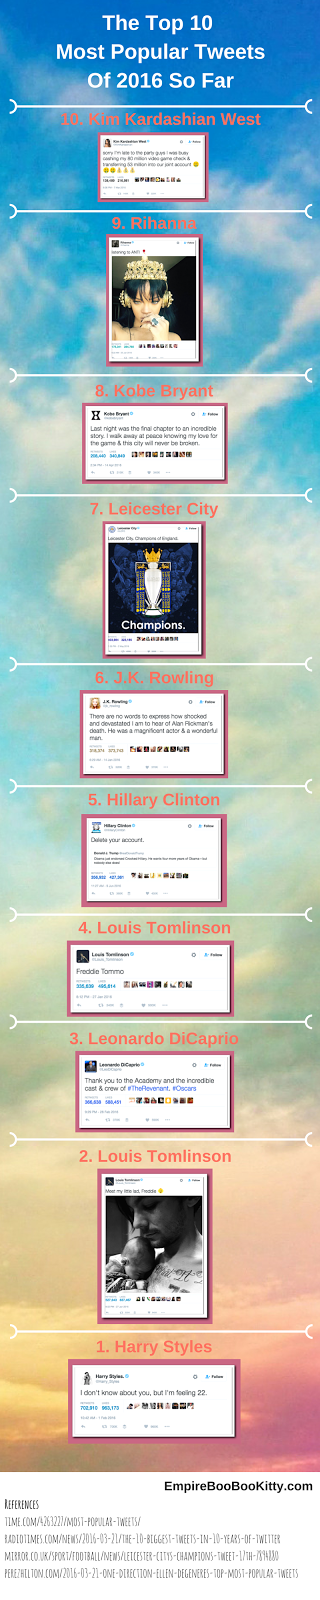 Most Popular Tweets of 2016 Infograhpic